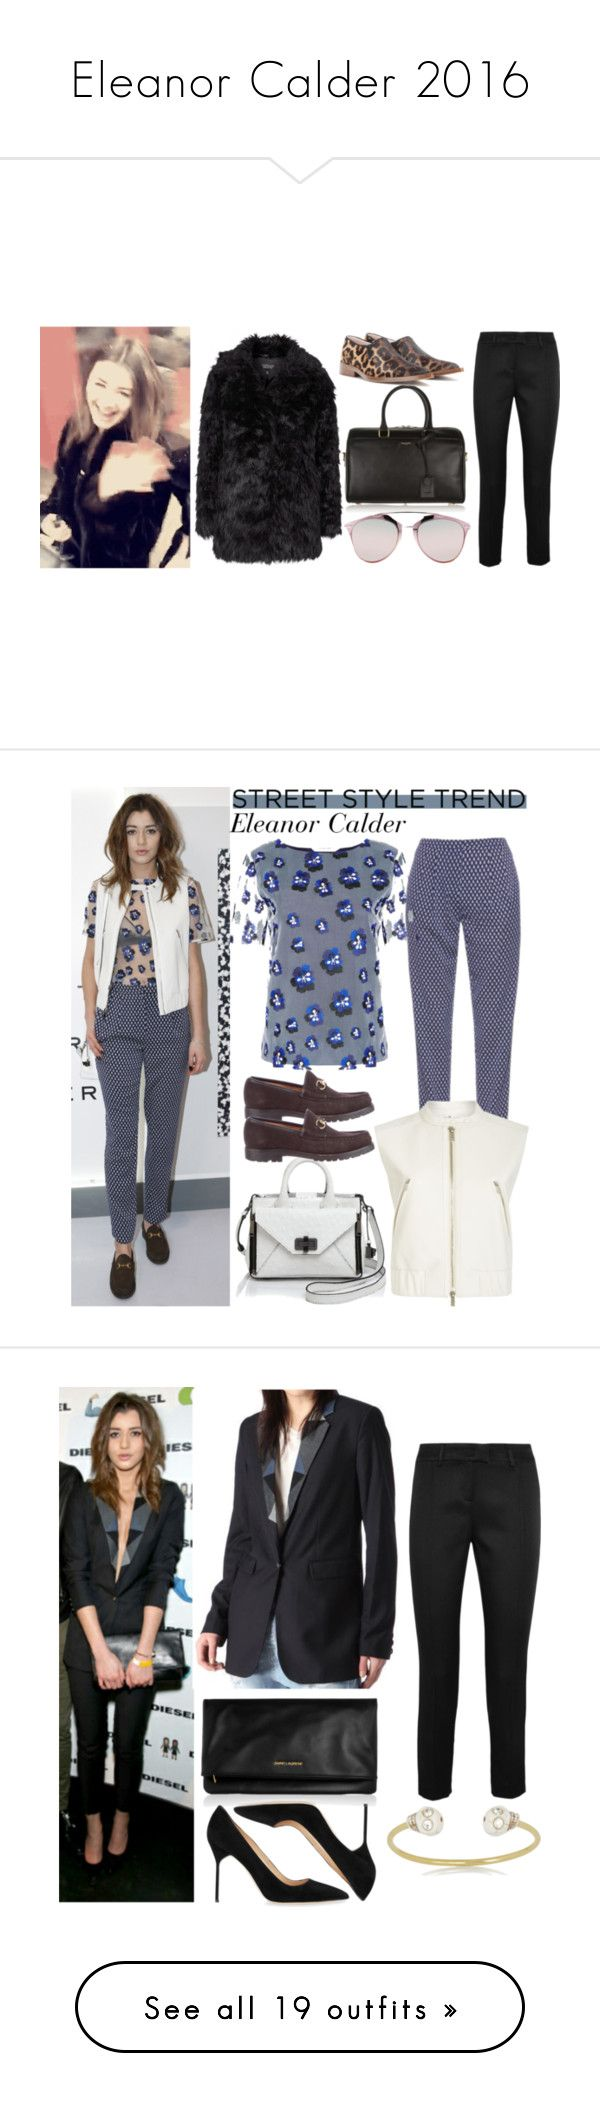 """""""Eleanor Calder 2016"""" by elenaday ❤ liked on Polyvore featuring Topshop, Yves Saint Laurent, Victoria Beckham, Christian Dior, Christopher Kane, women's clothing, women, female, woman and misses"""